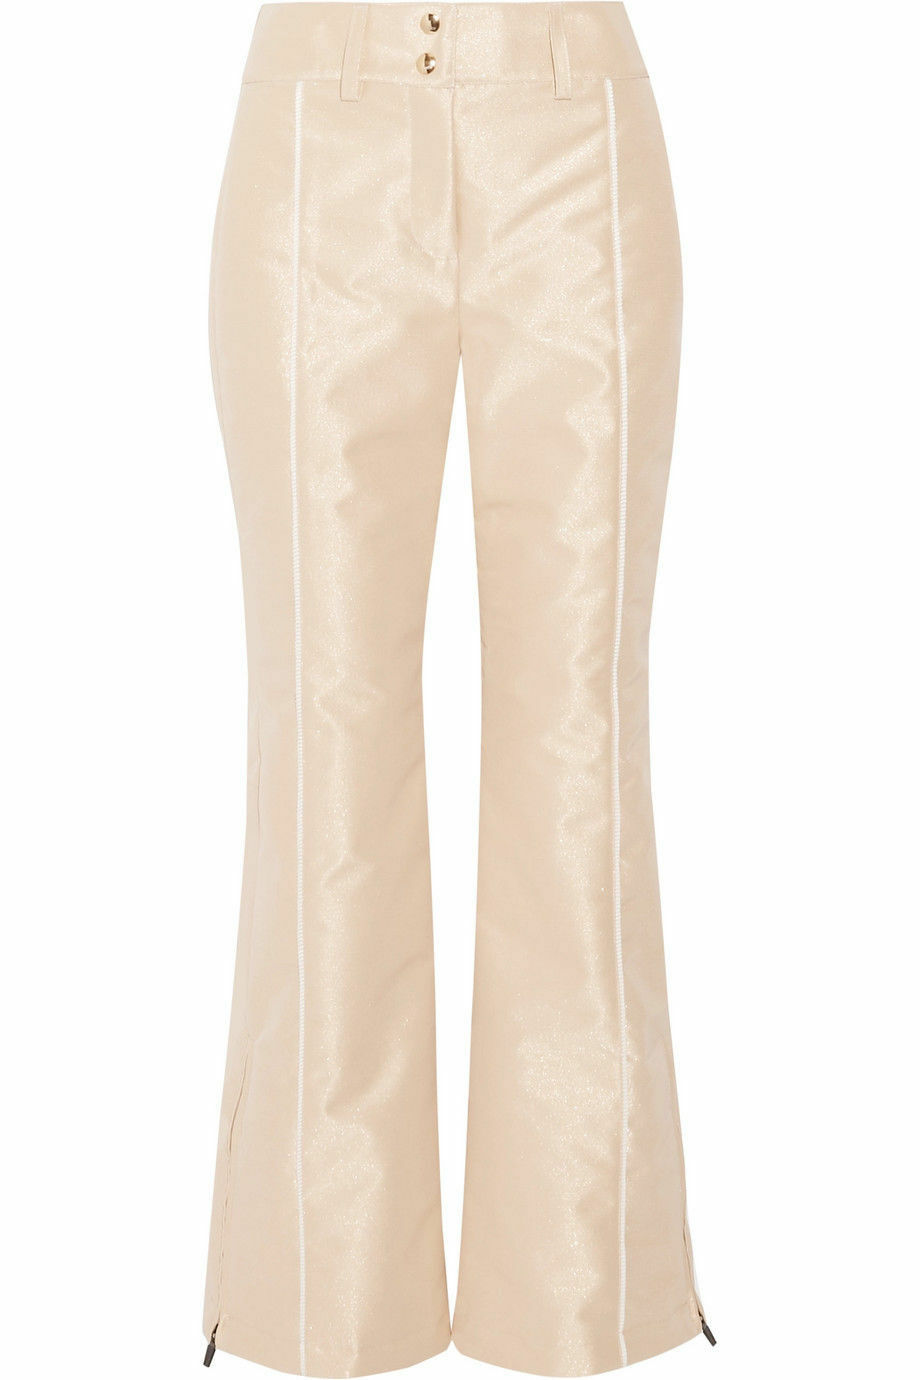 FENDI Gold STUNNING METALLIC SKI PANTS   TROUSERS NEW Größe 42   UK 10